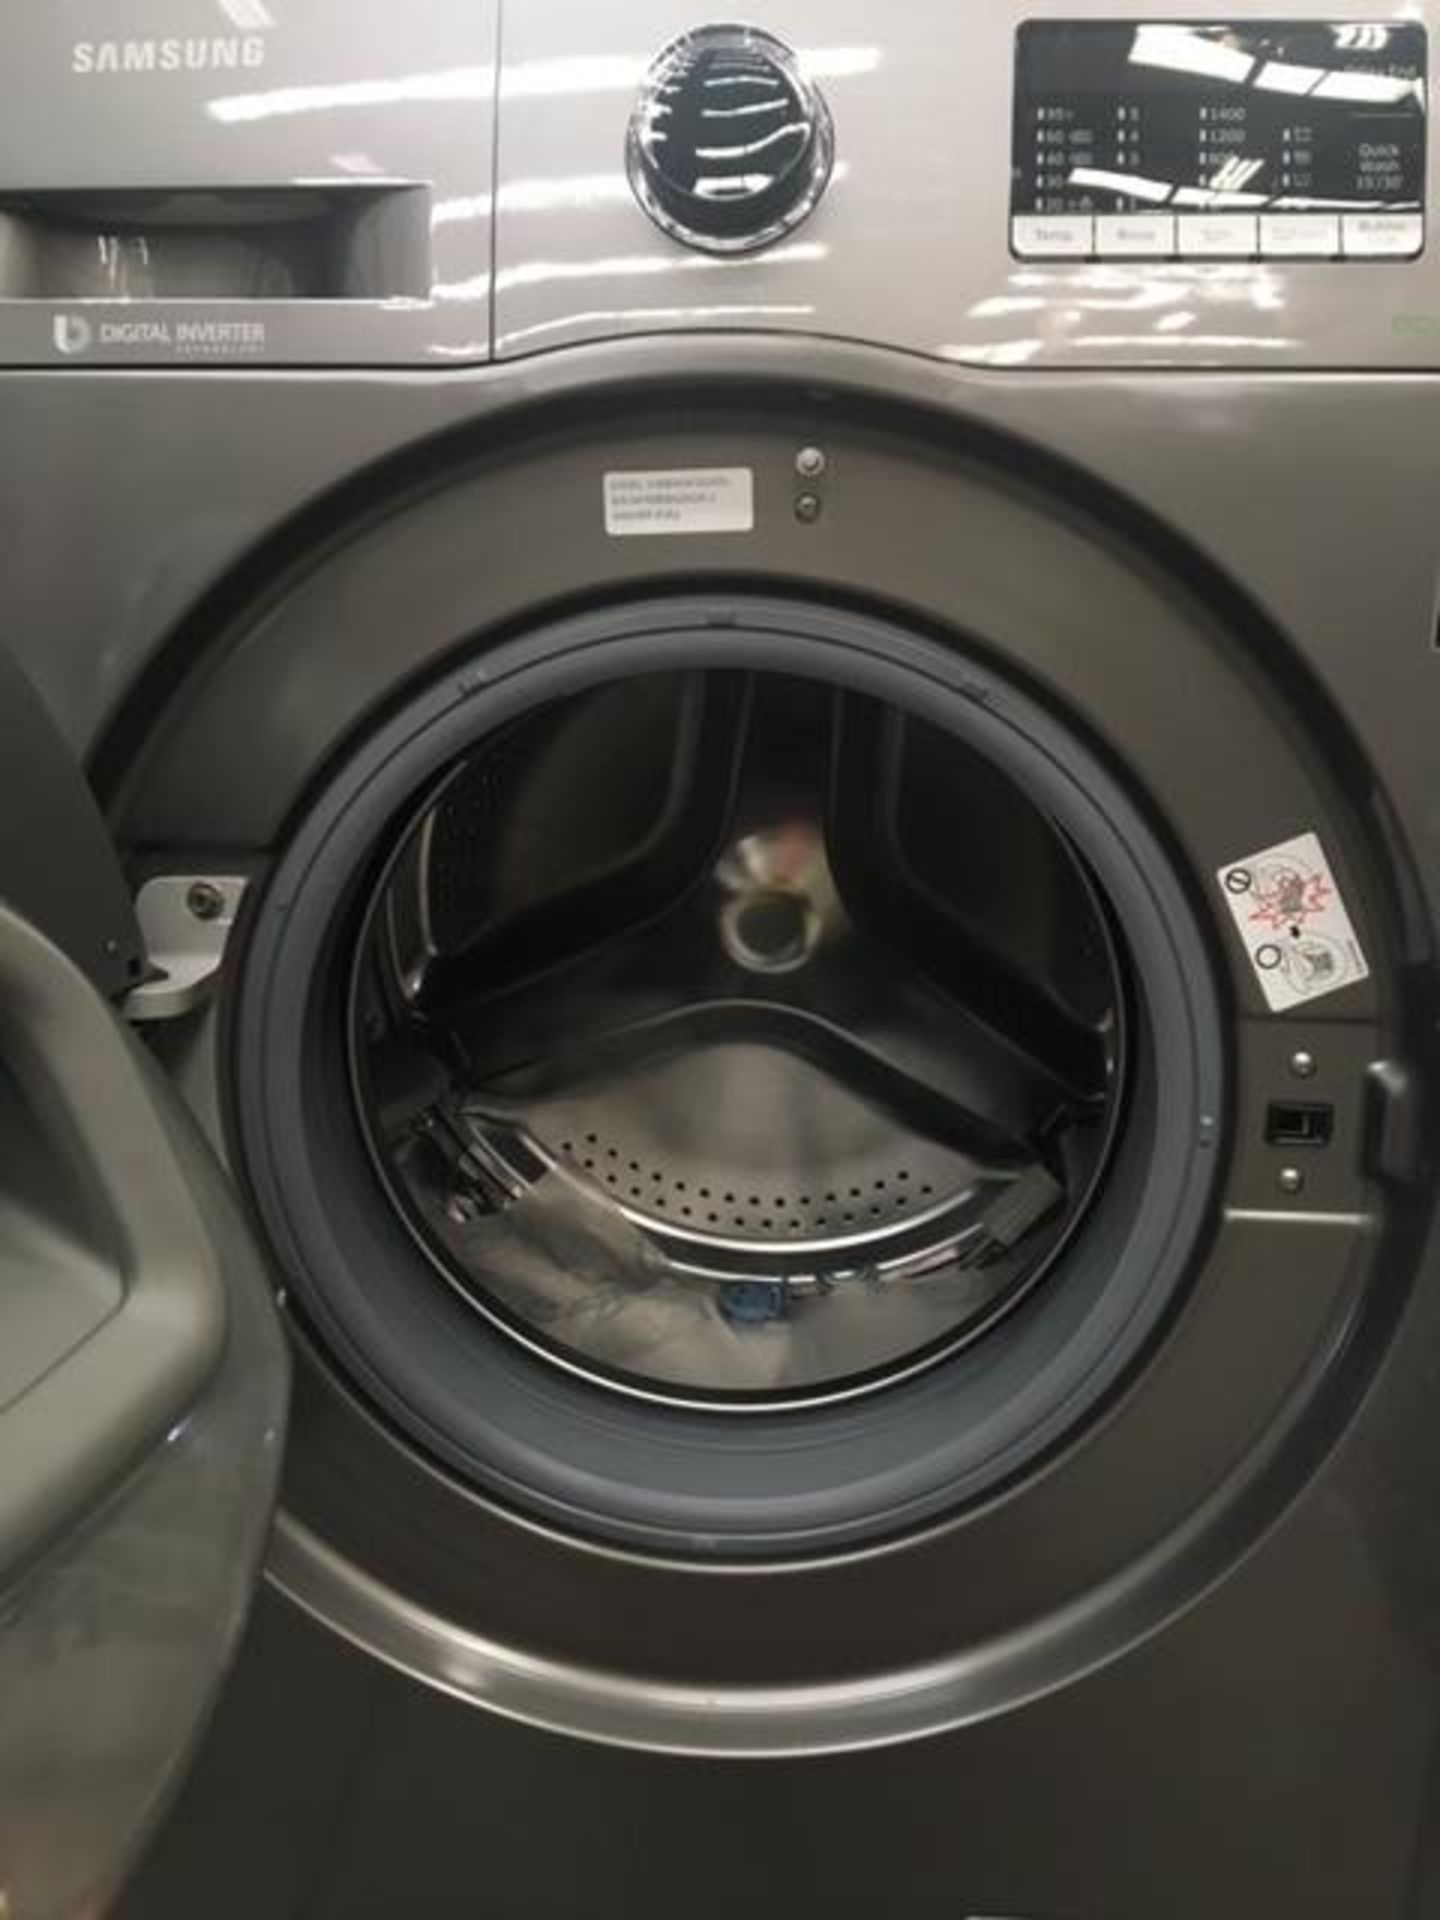 Pallet of 2 Samsung Premium Washing machines. Total Latest selling price £778* - Image 7 of 7